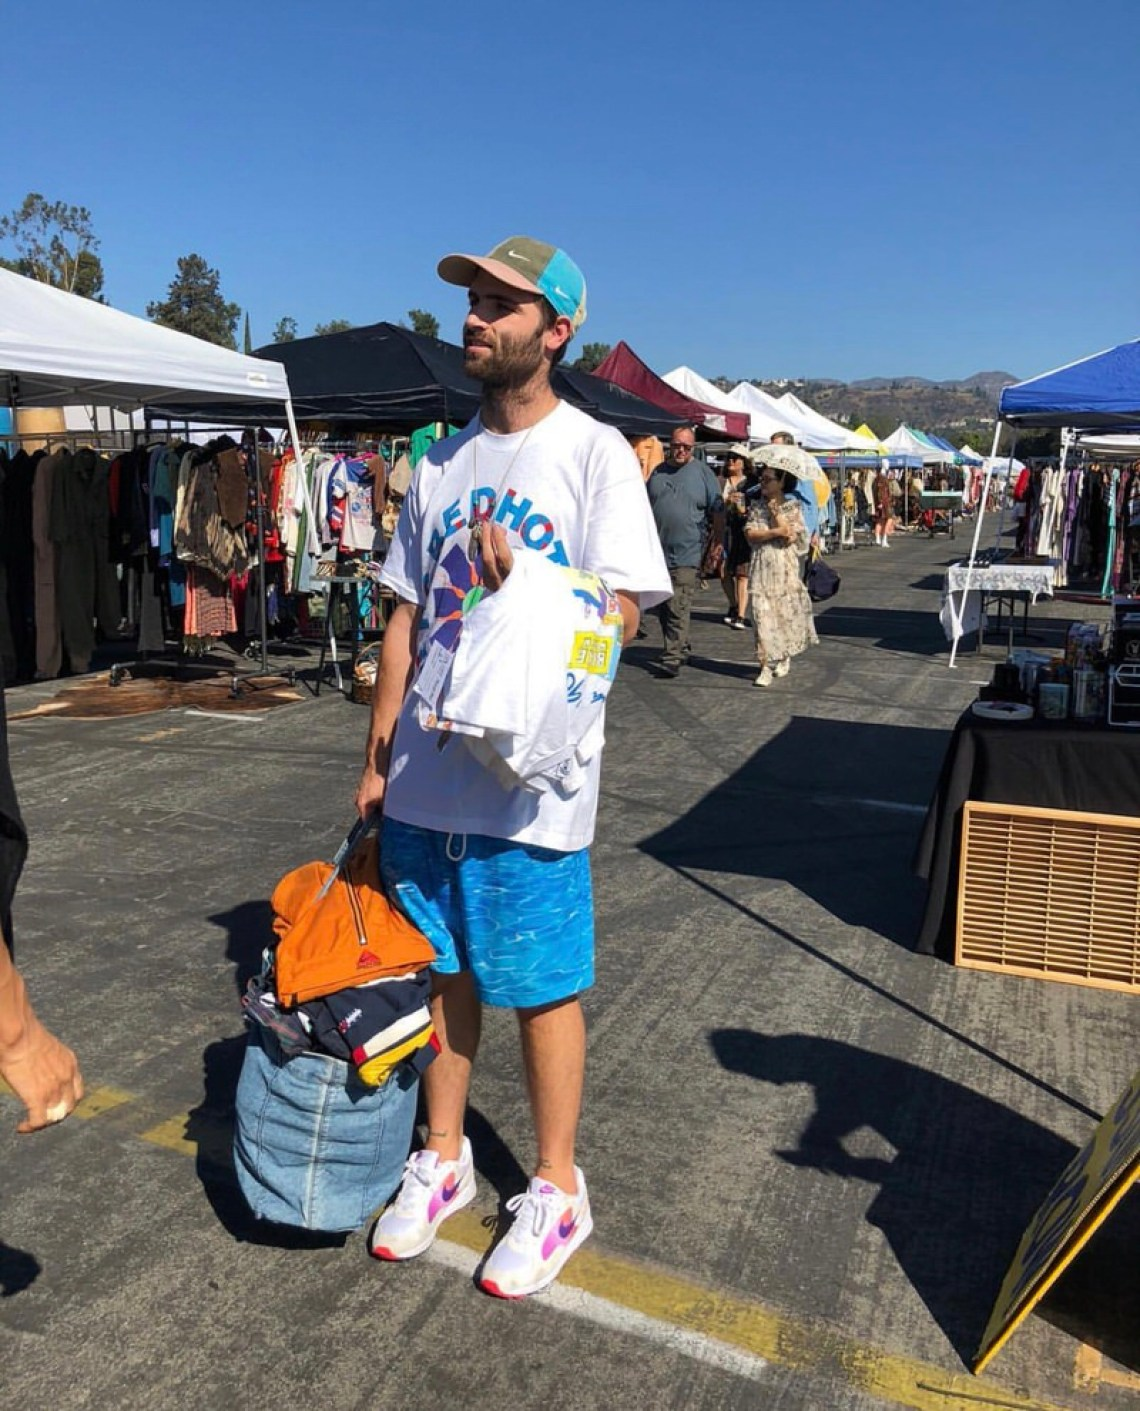 Red hot finds at the Rose Bowl.